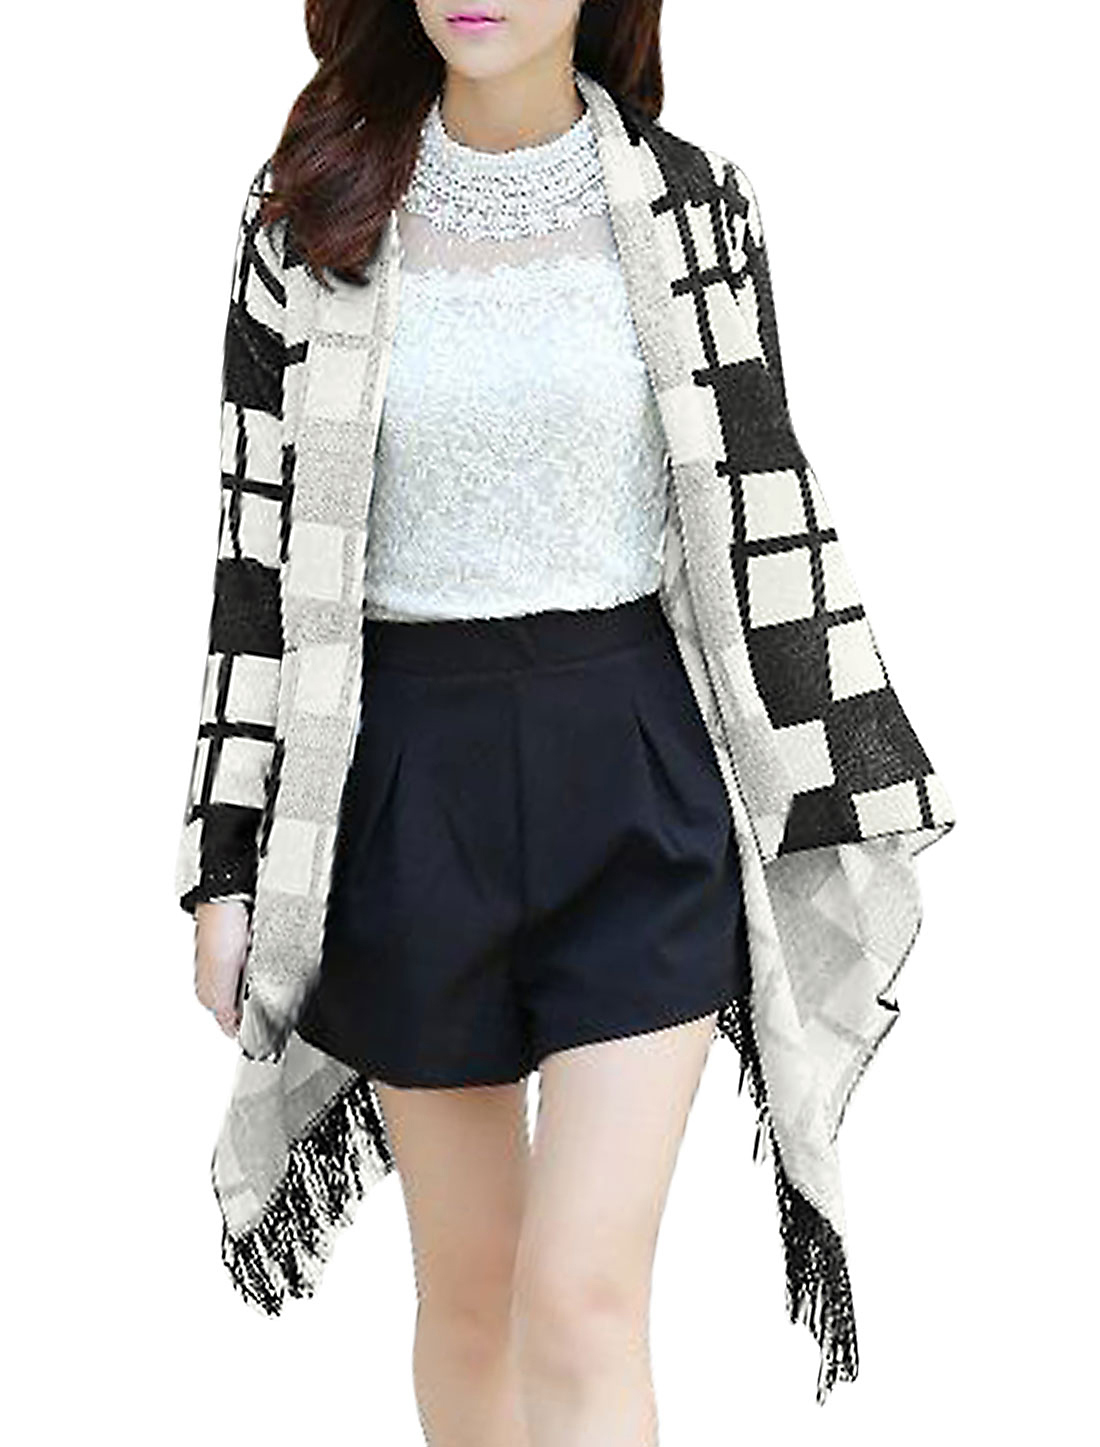 Shawl Collar Checkered Pattern Leisure Cardigan for Women Black XS